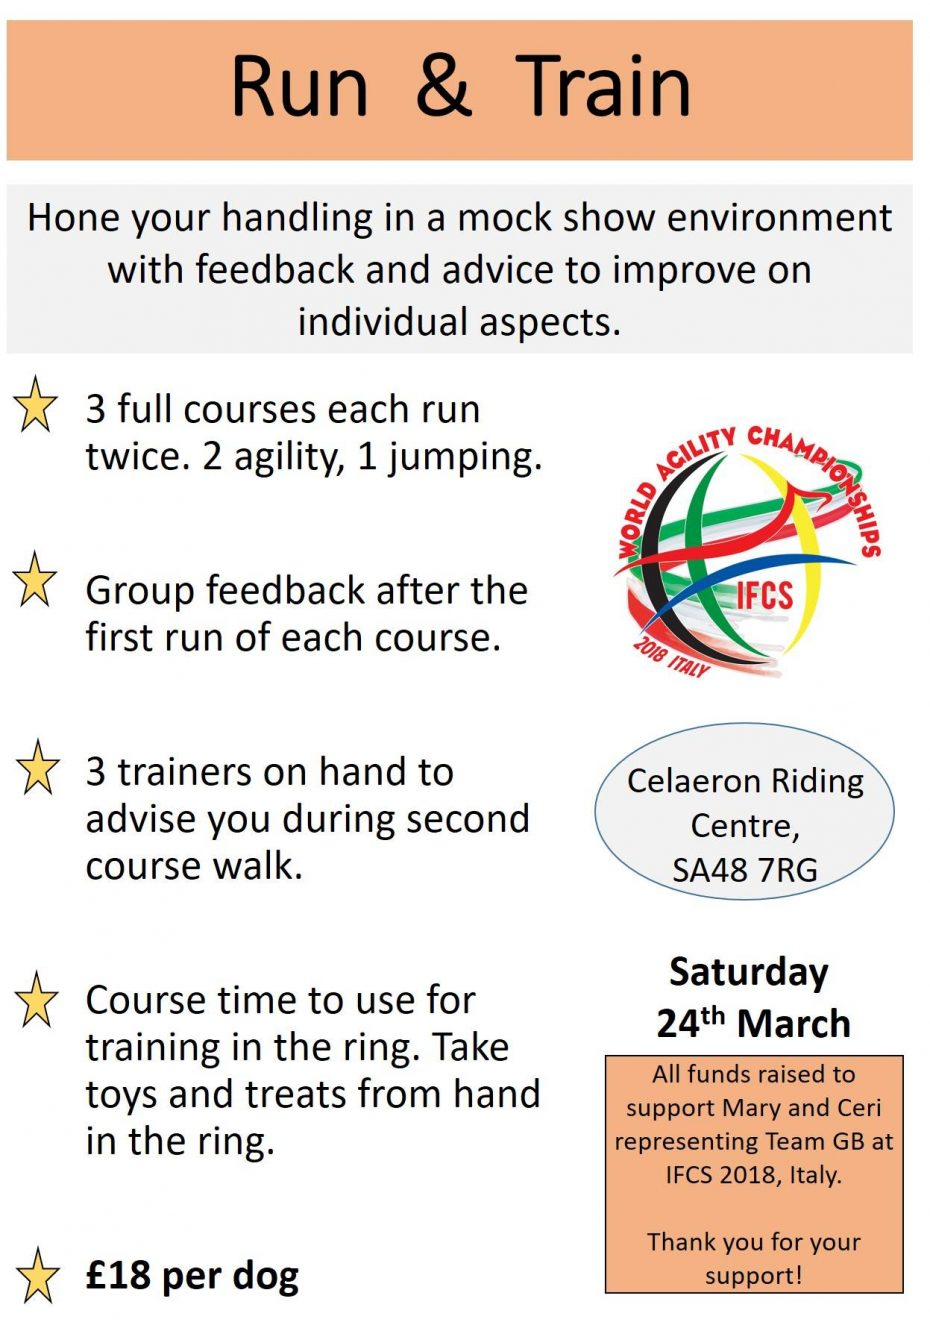 Run and Train event information